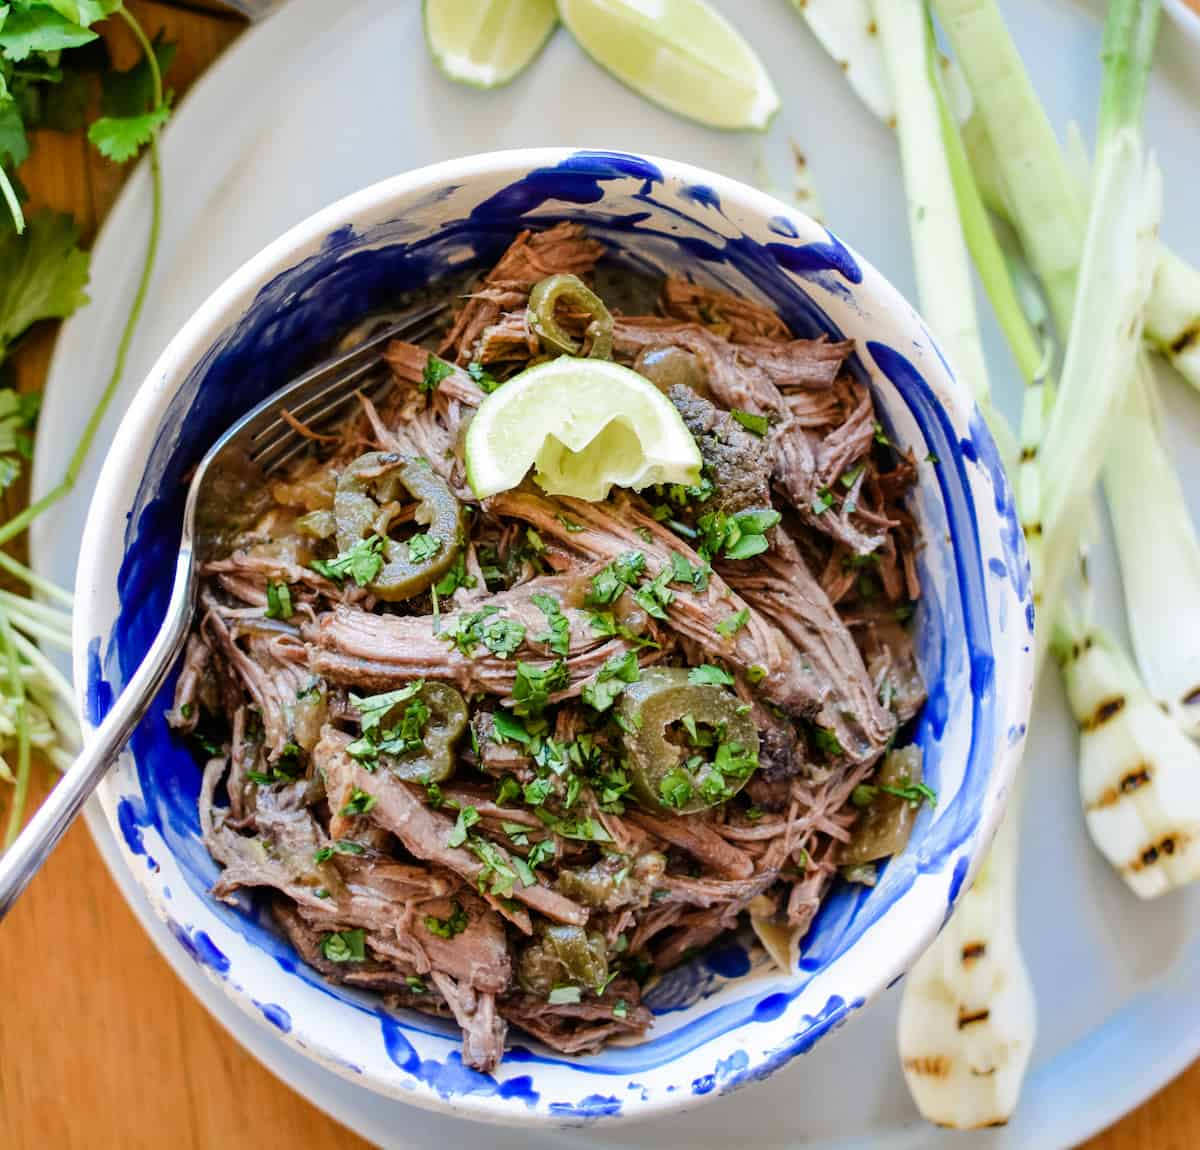 Mexican Shredded Beef for tacos, gorditas, tostadas, and more! With stove top, slow cooker, and Instant Pot instructions included. #shreddedbeef #beeffortacos #Mexicanshreddedbeef #beeftacos